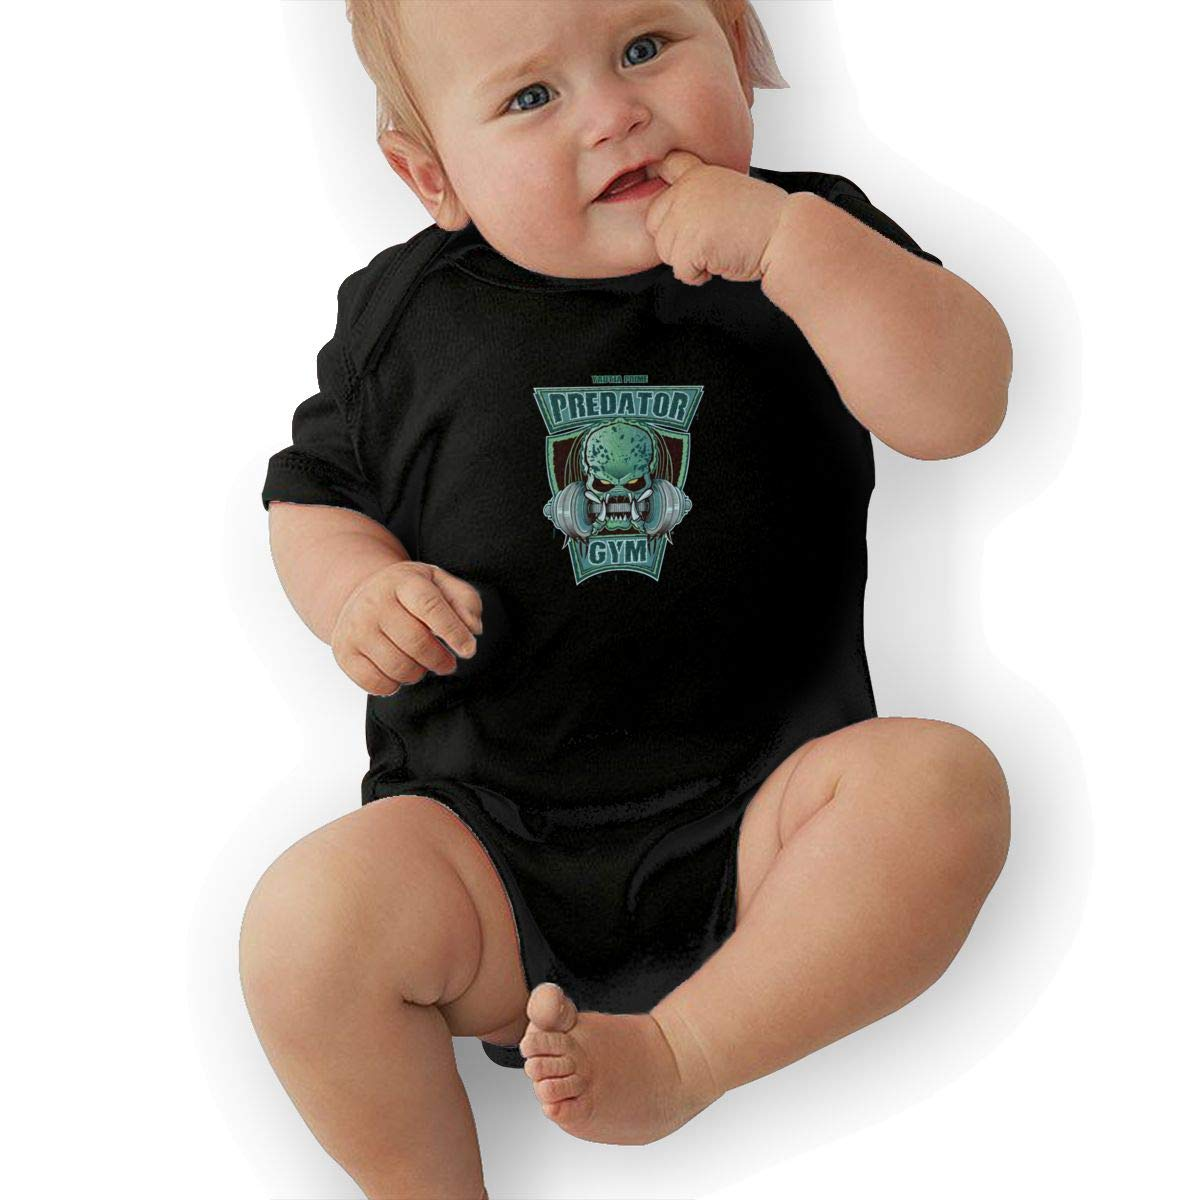 Dfenere Predator Gym Fashion Newborn Baby Short Sleeve Bodysuit Romper Infant Summer Clothing